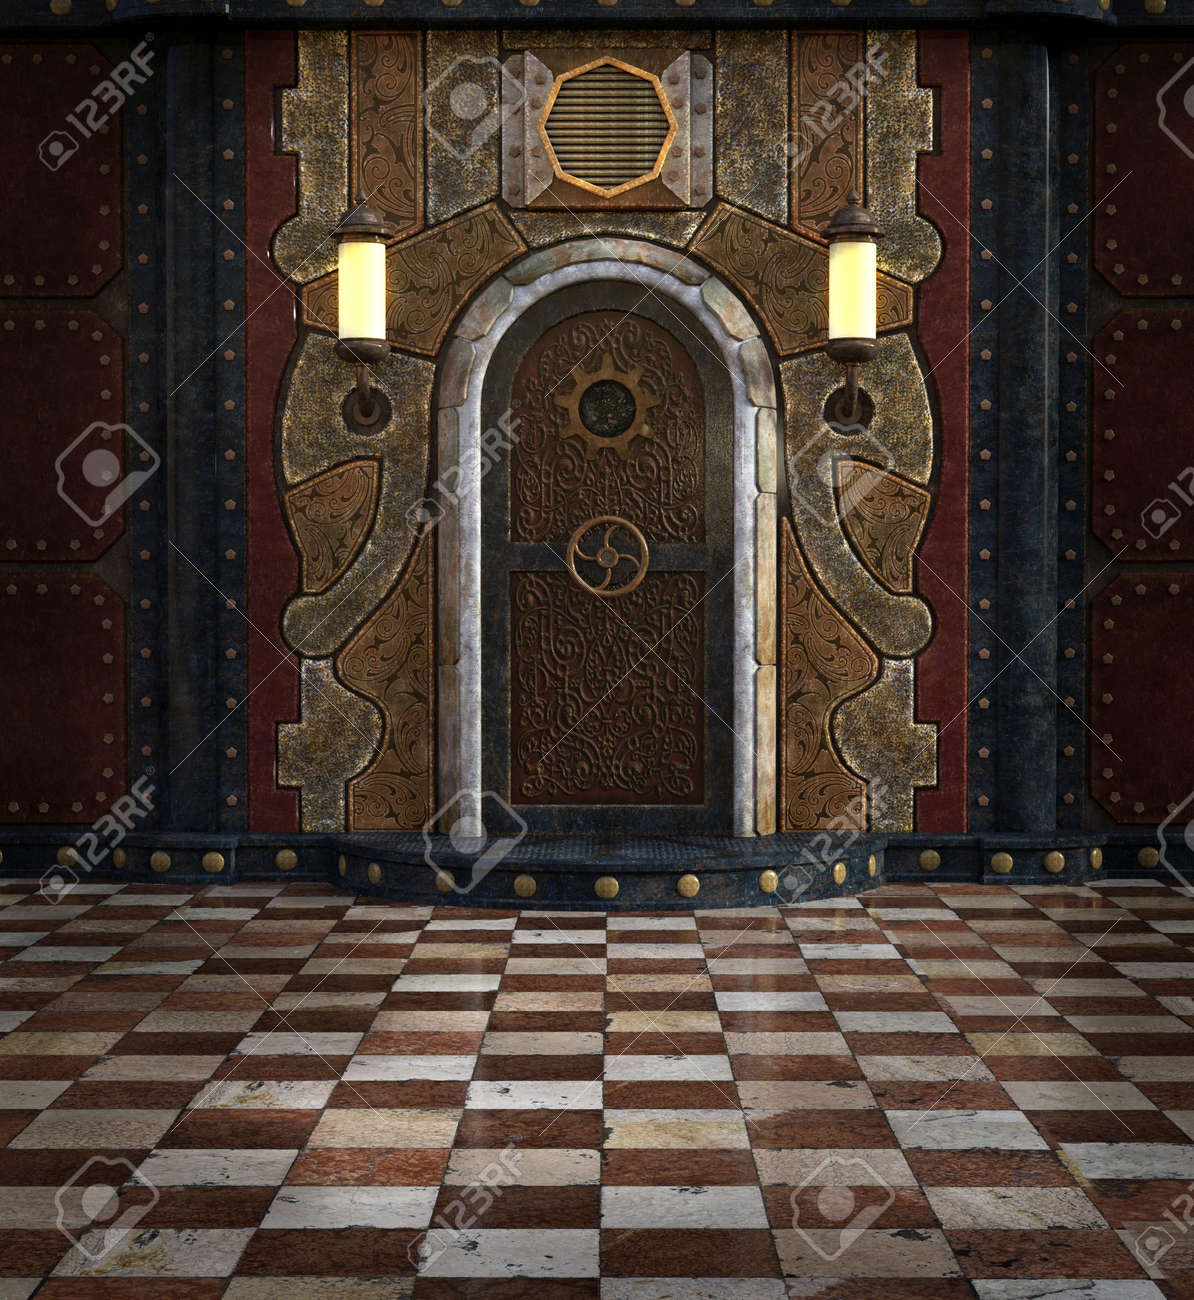 Ste&unk door room Stock Photo - 71475155 & Steampunk Door Room Stock Photo Picture And Royalty Free Image ...